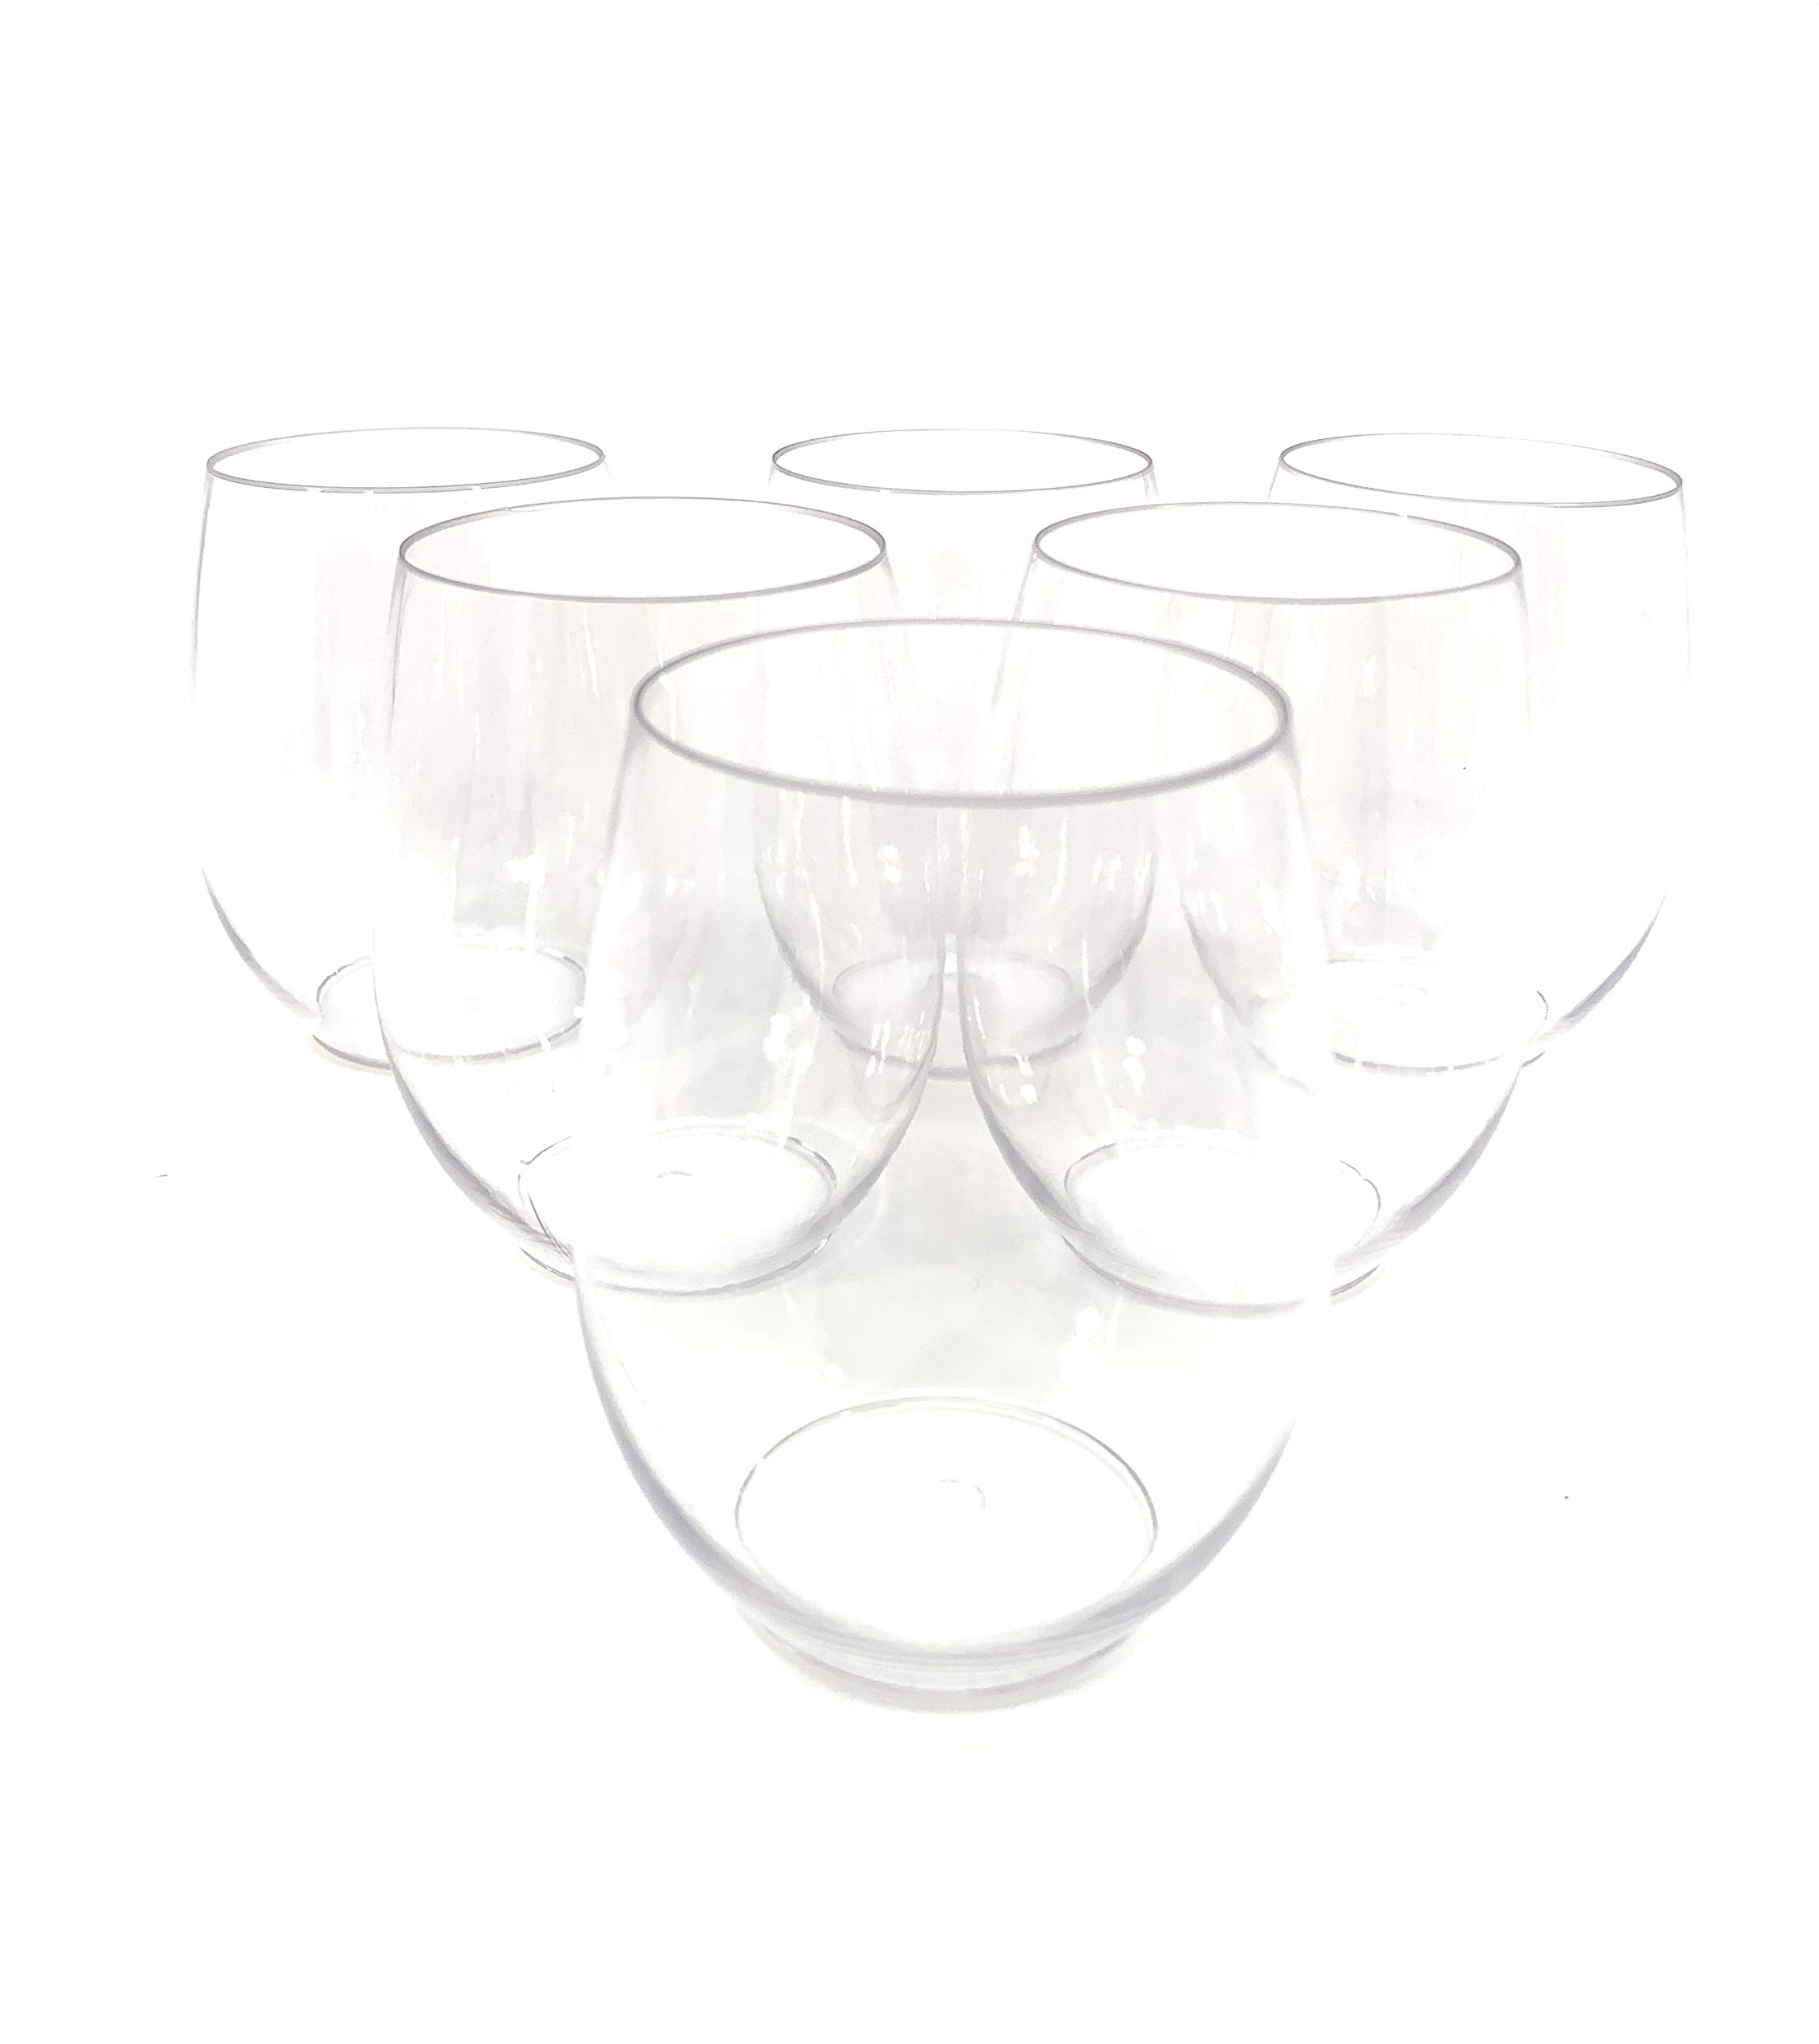 48 piece Stemless Unbreakable Crystal Clear Plastic Wine Glasses Set of 48 (10 Ounces) by Oojami